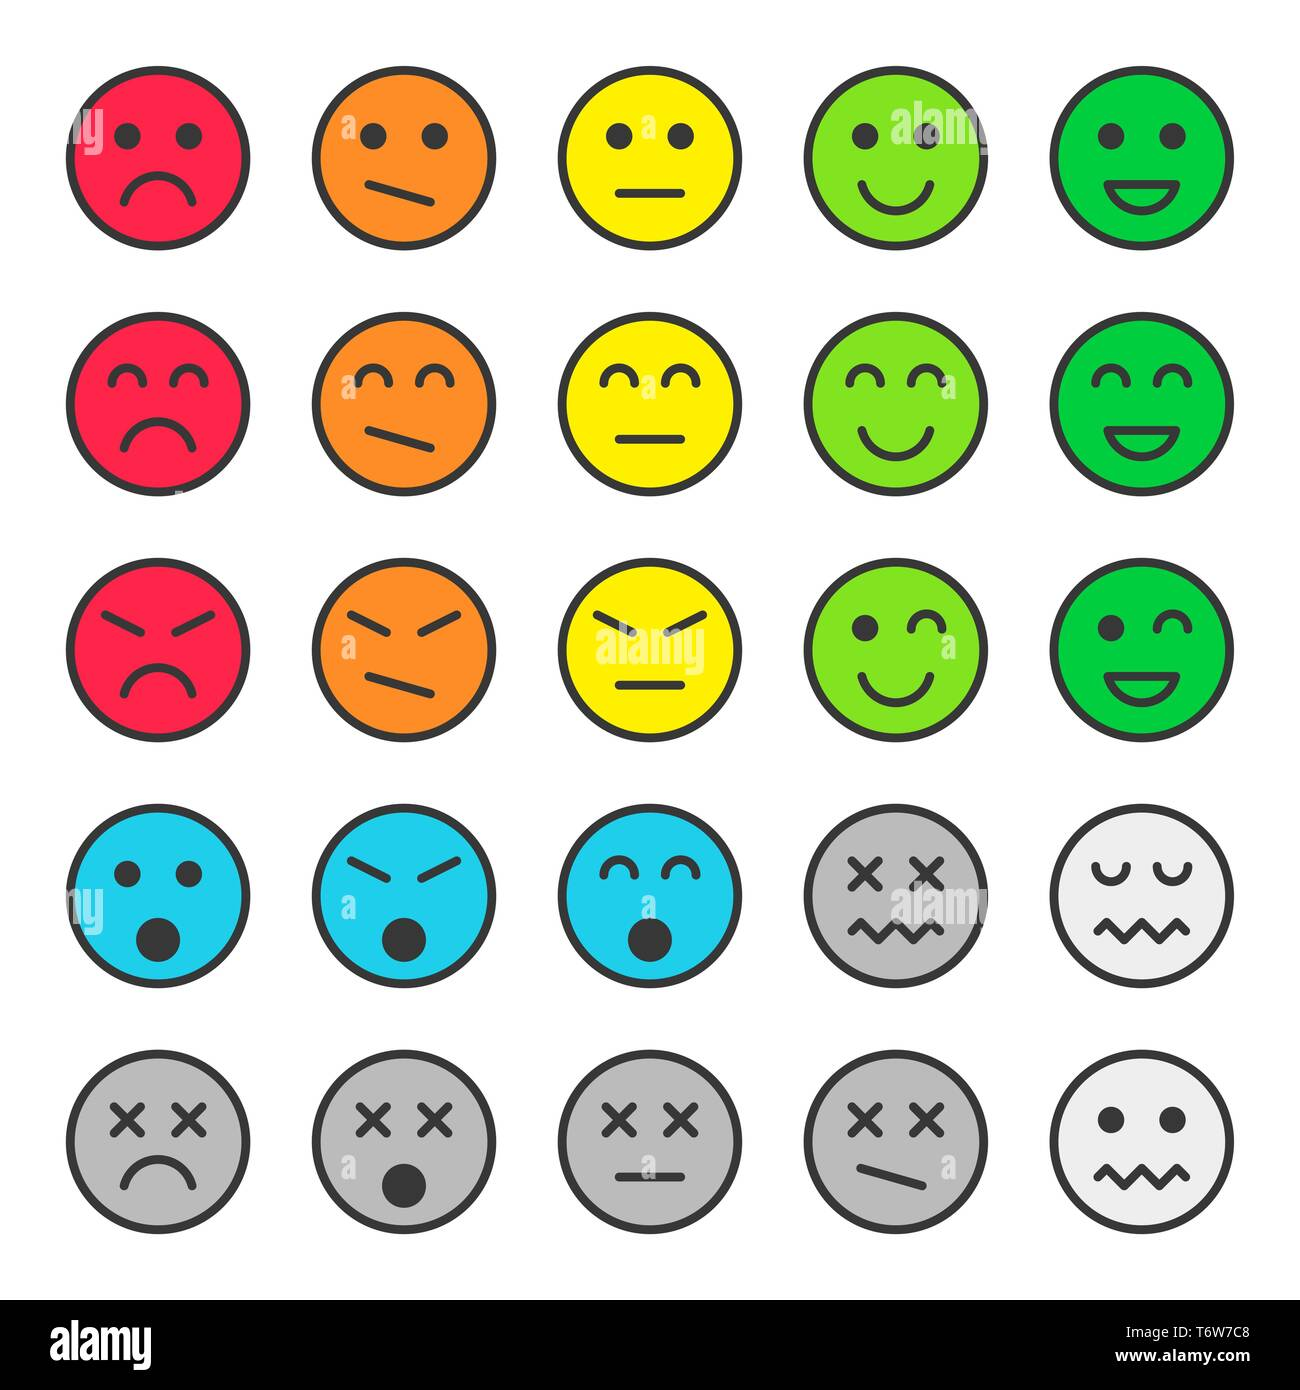 Set of colorful emoticons, faces icons. Vector illustration. Isolated on white background. - Stock Image